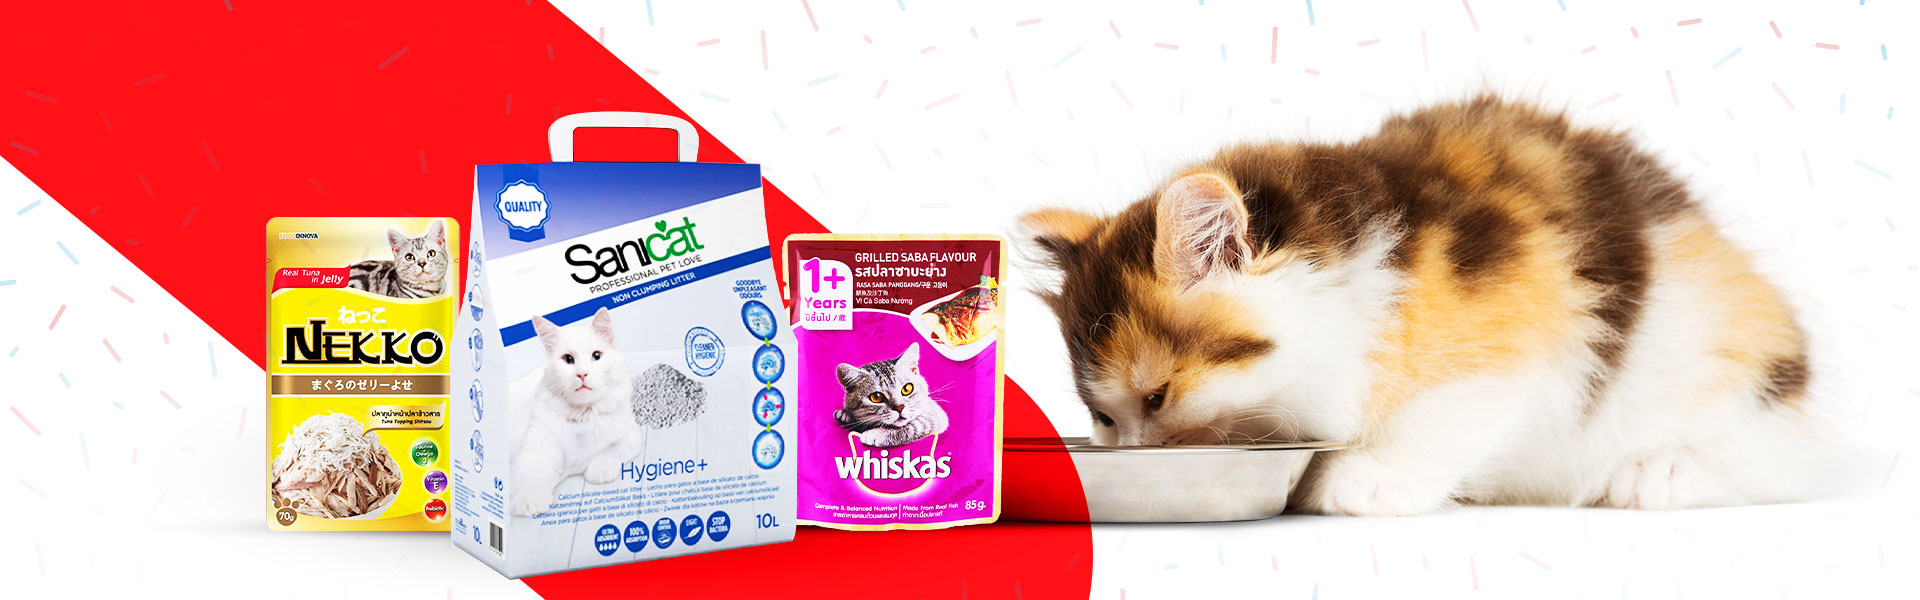 Cat Food-sbpetshop